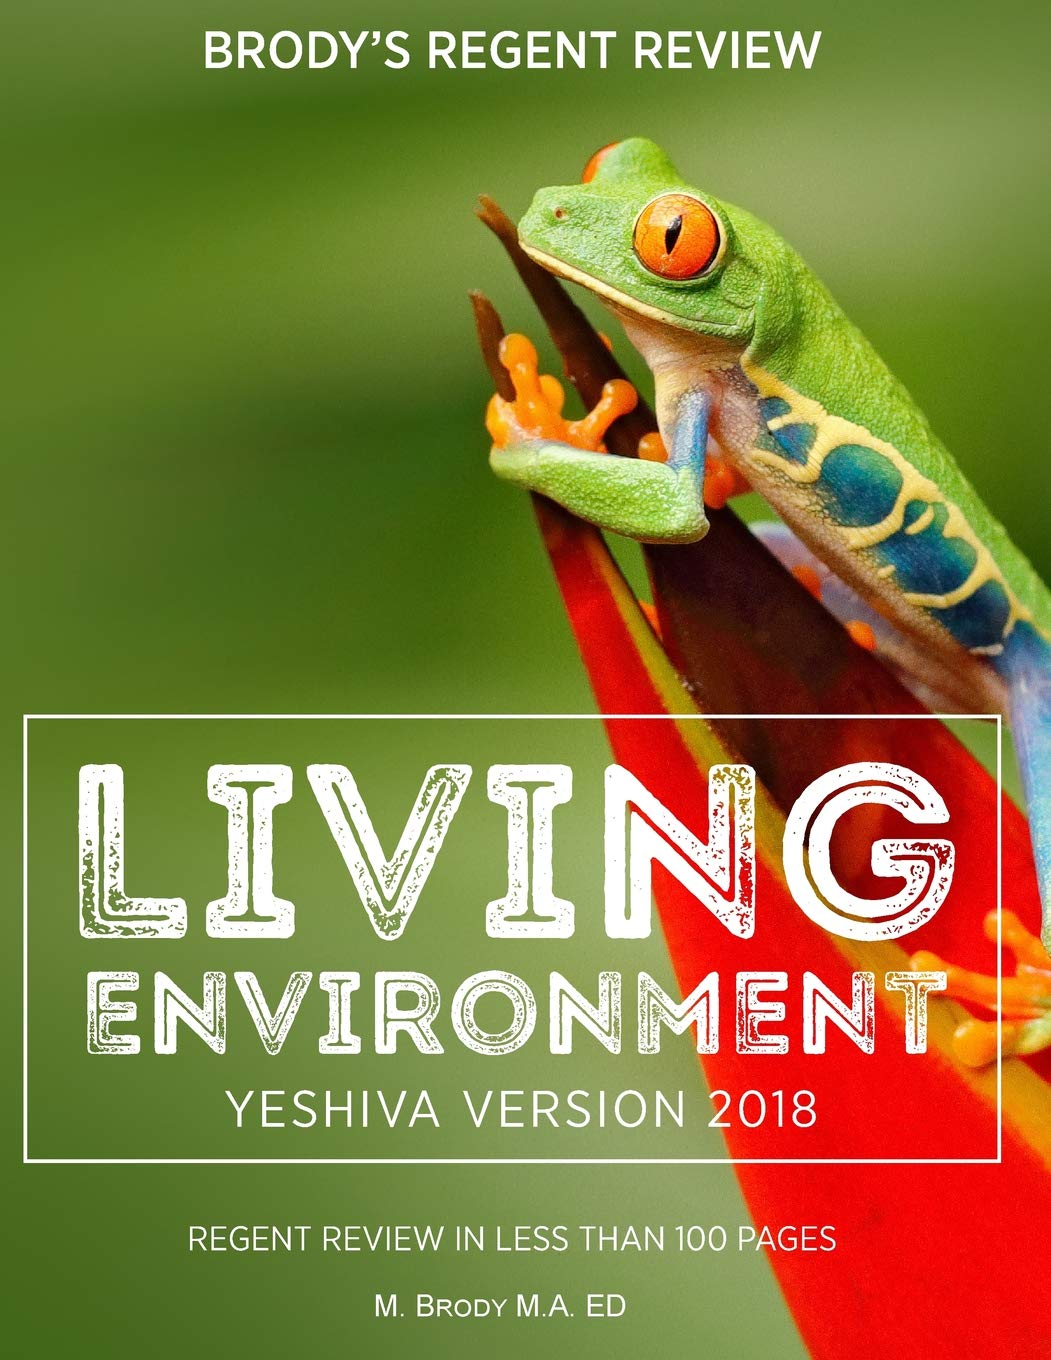 Download Brody's Regent Review: Living Environment Yeshiva Version 2018: Regent Review in Less Than 100 Pages ebook